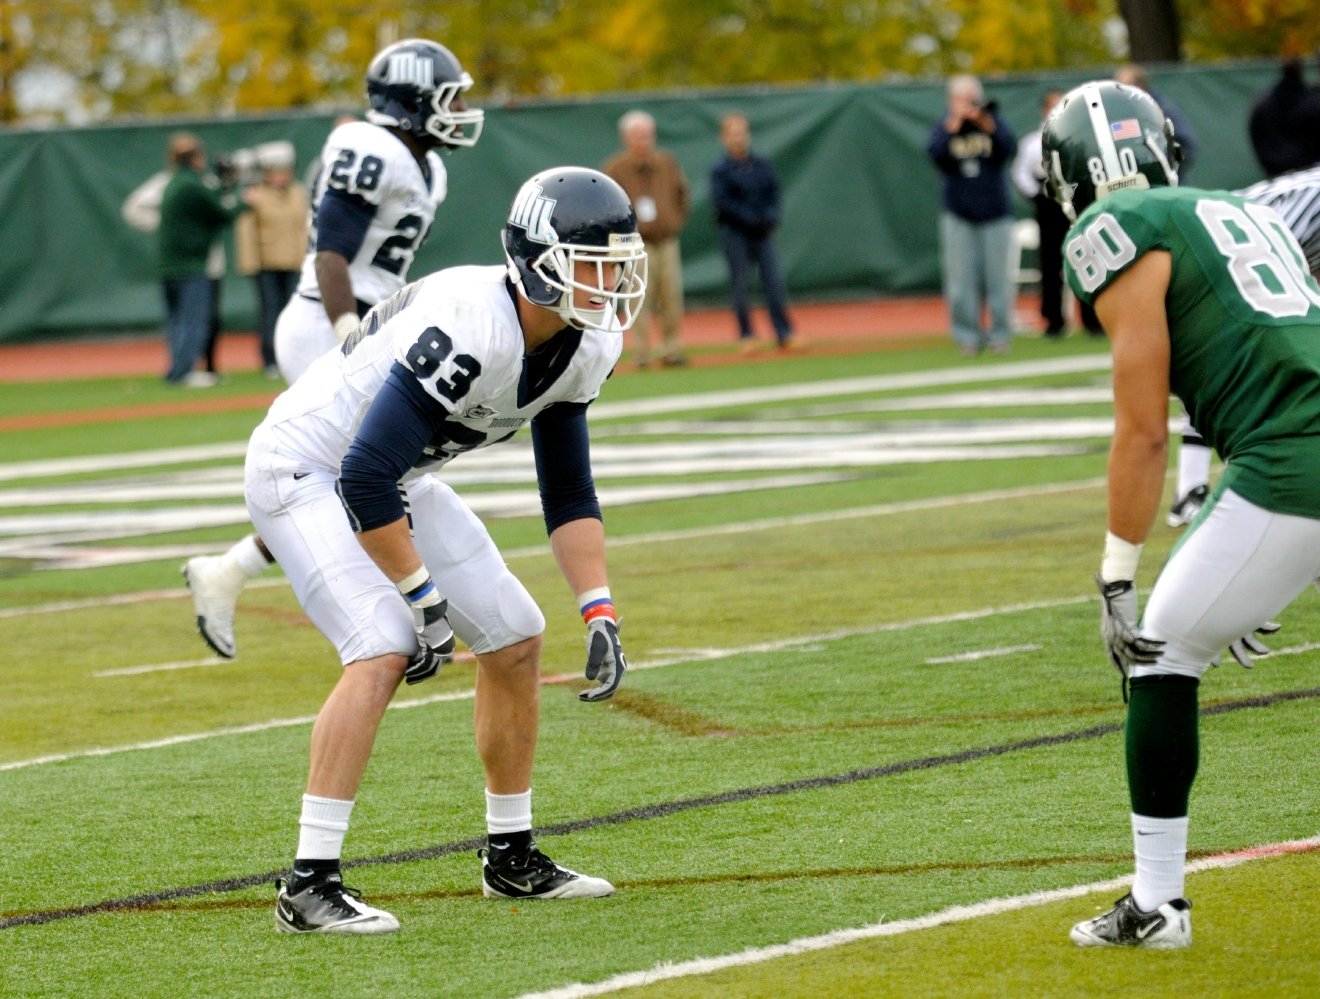 Hogan was pressed into service as a defensive back for the Hawks (Photo / Monmouth Athletics)